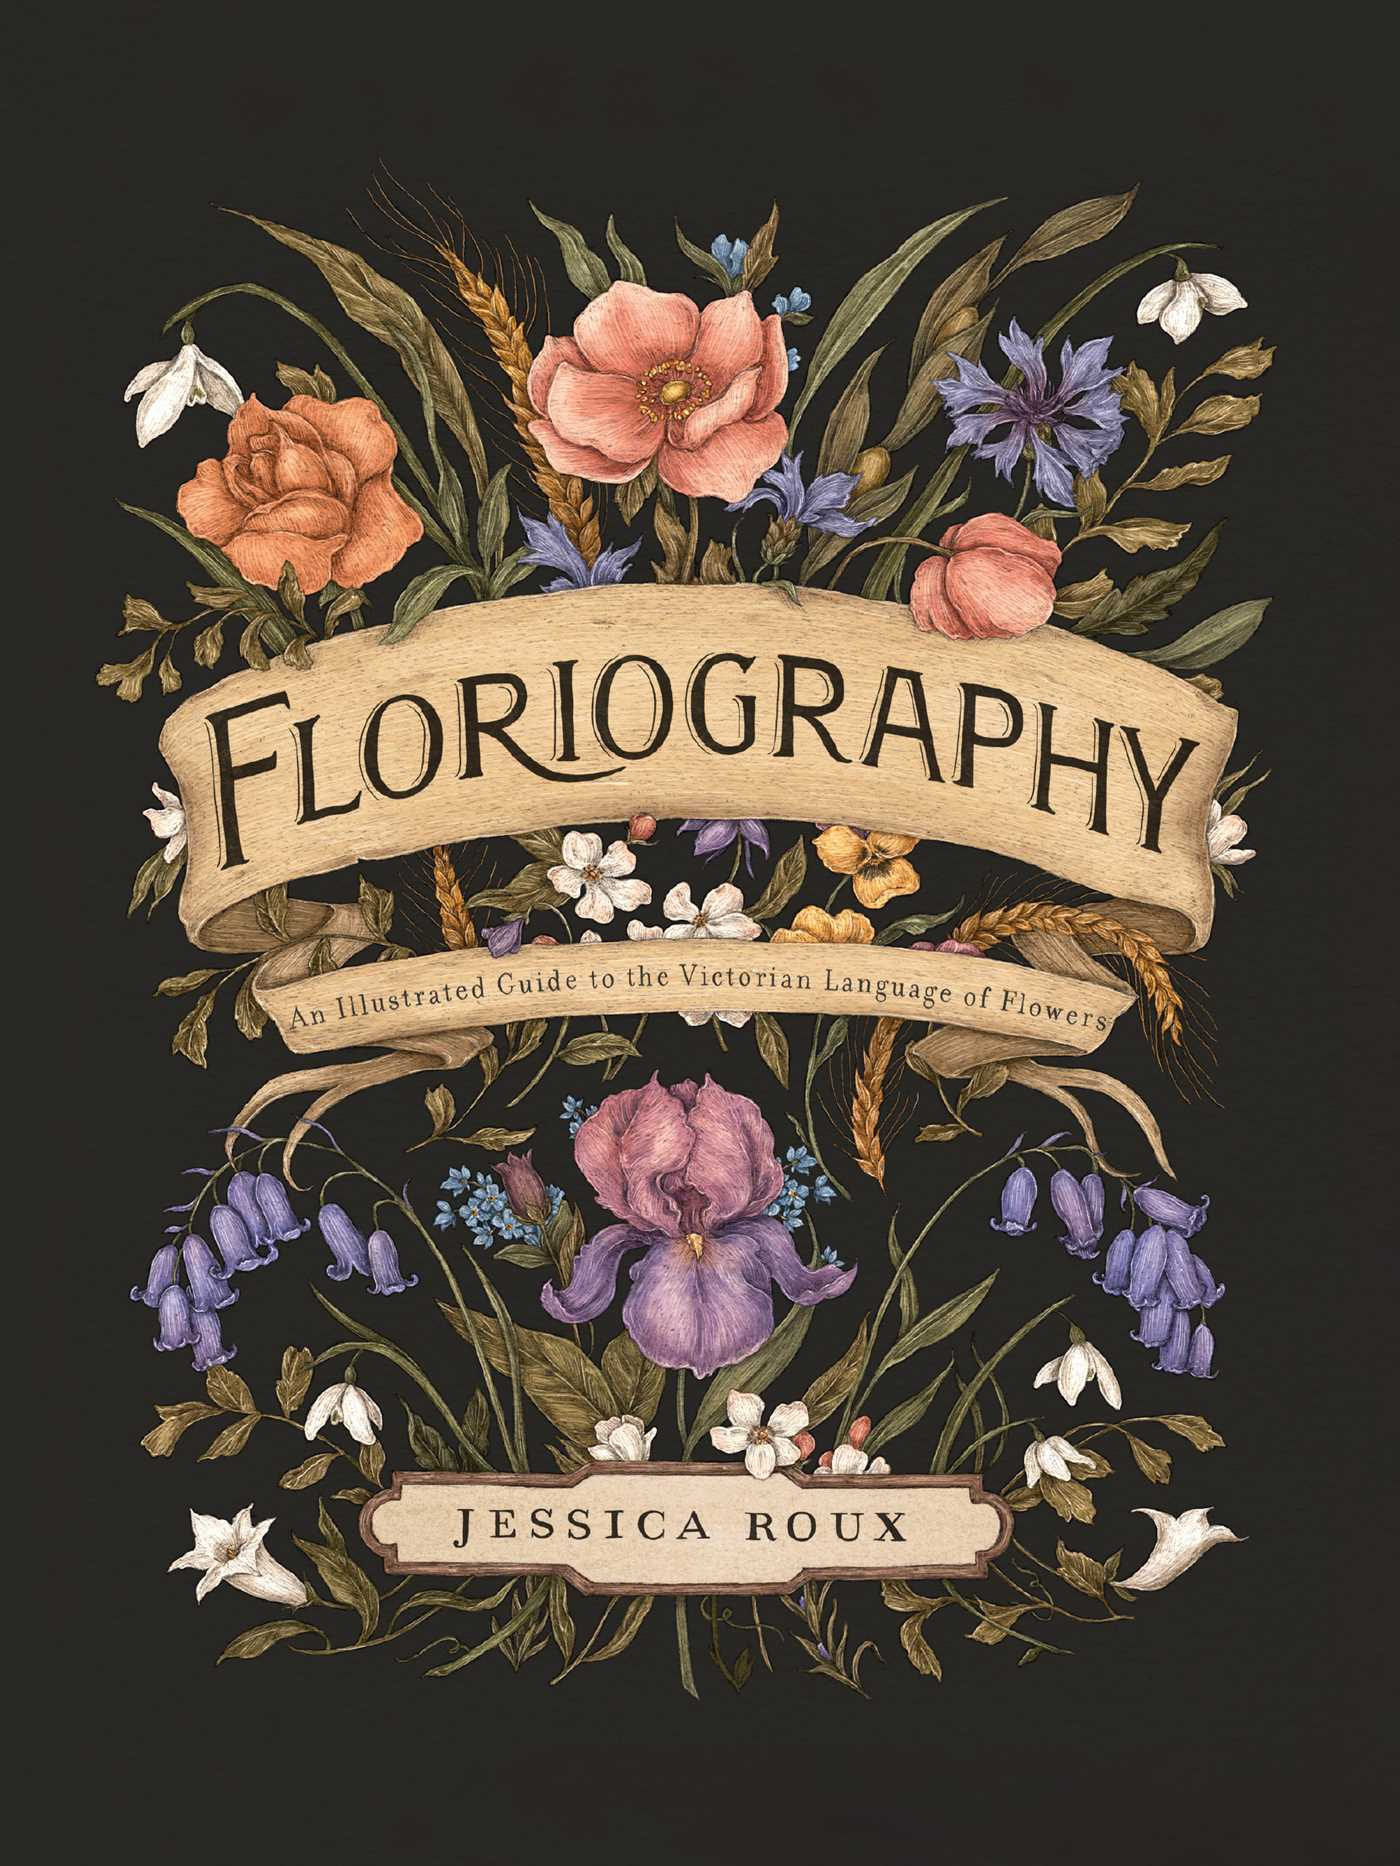 [PDF] [EPUB] Floriography: An Illustrated Guide to the Victorian Language of Flowers Download by Jessica Roux